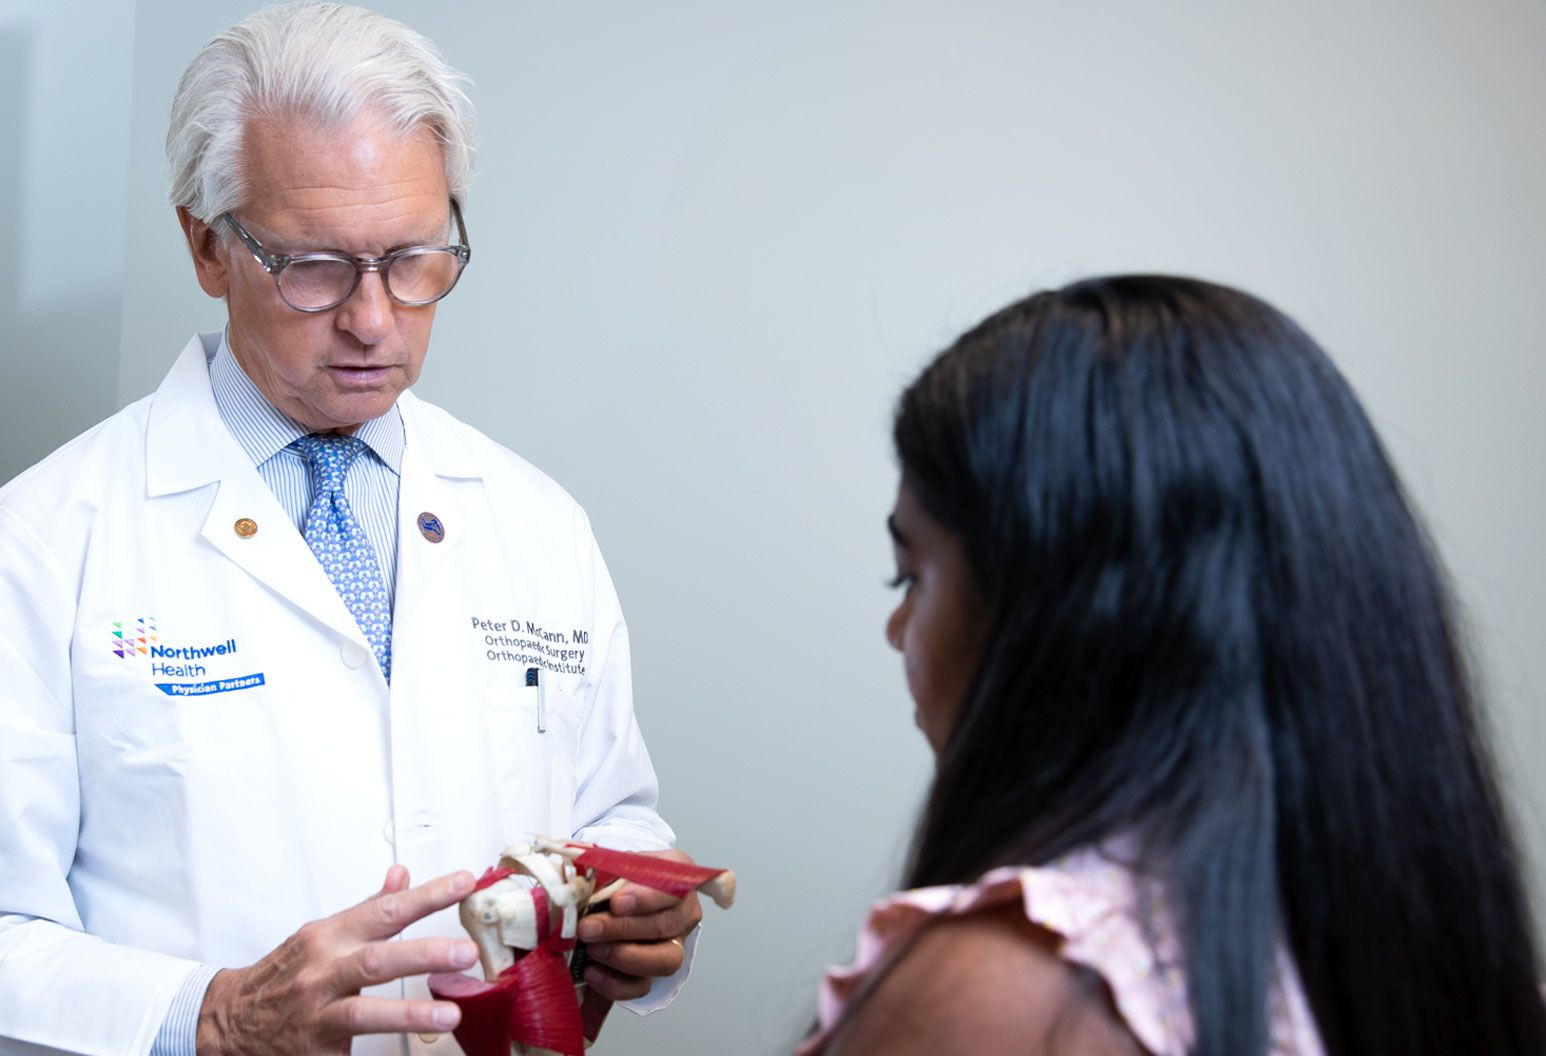 A male doctor wearing a white coat and blue glasses shows a joint model to a female patient with long, dark hair.